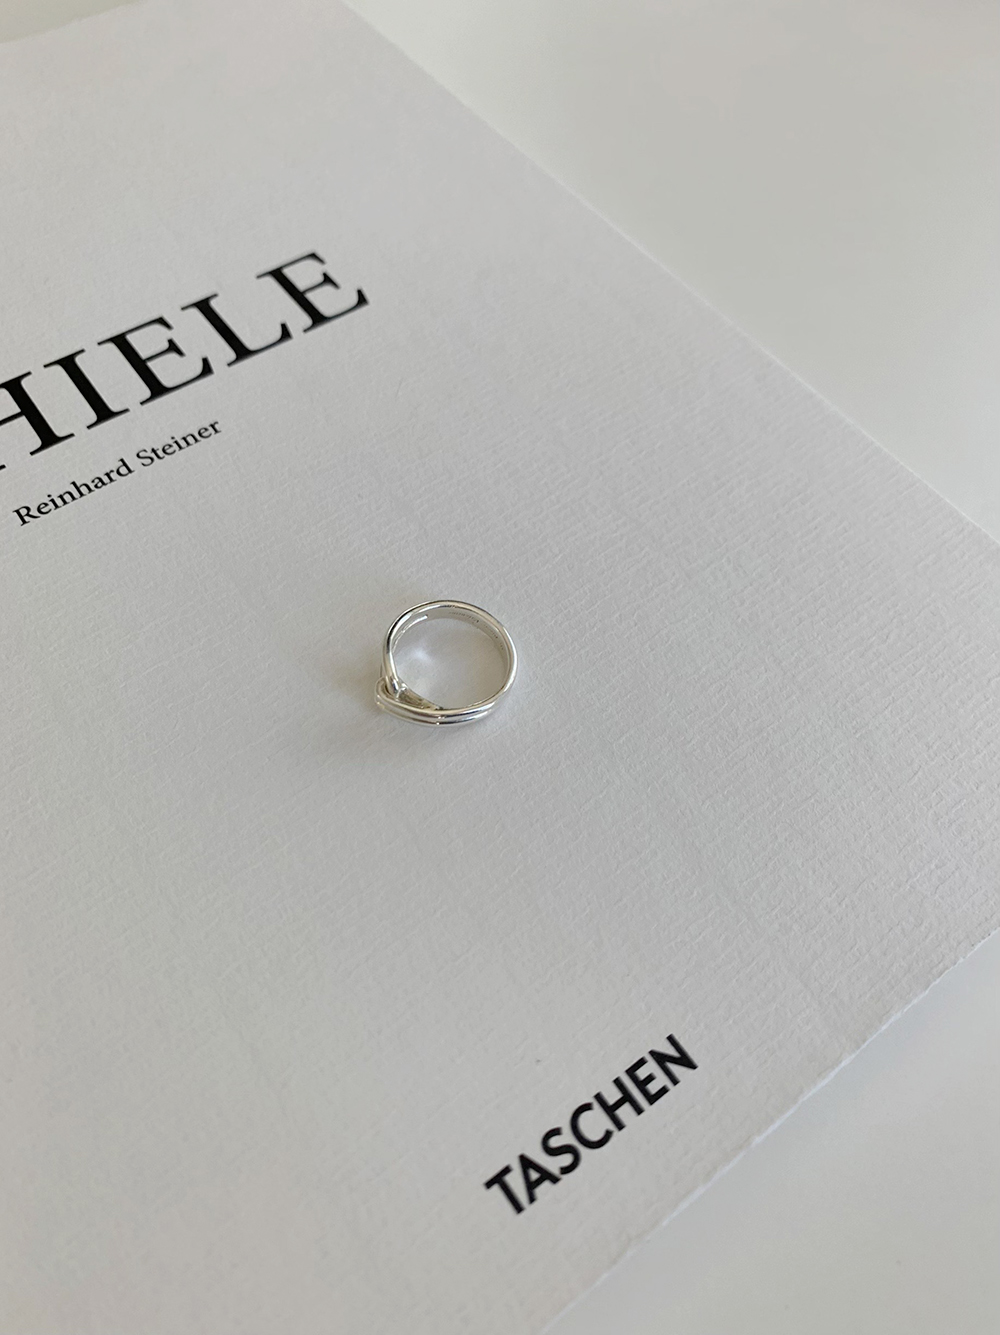 Unbal silver ring